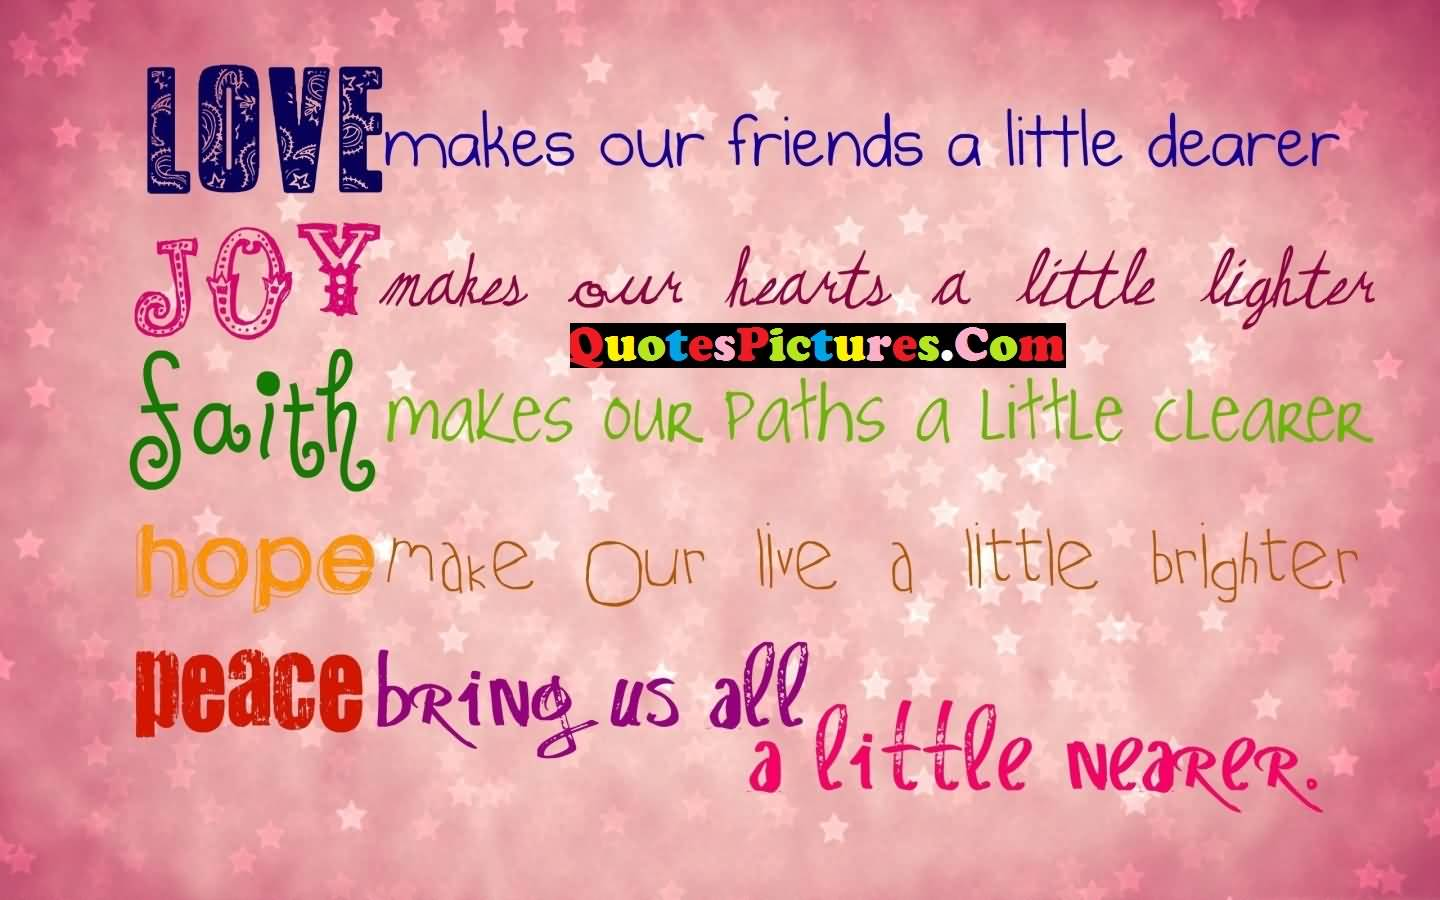 Inspirational Love Quote - Love Makes Our Friends A Little Dearer